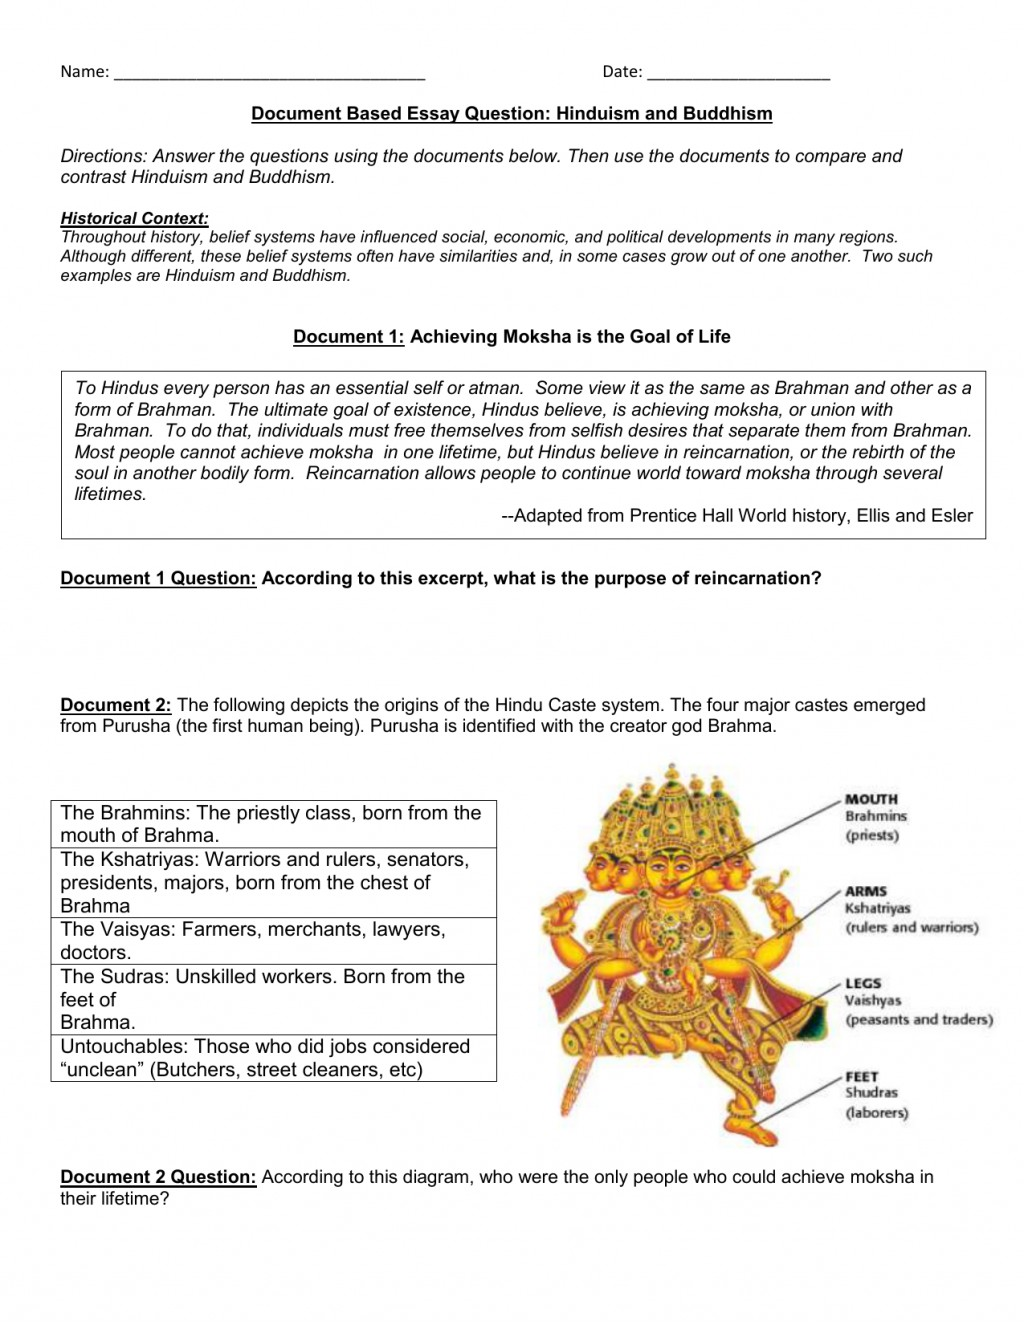 006 009328677 1 Essay Example Surprising Hinduism Questions Hindu Muslim Ekta In Hindi And Buddhism Introduction Large